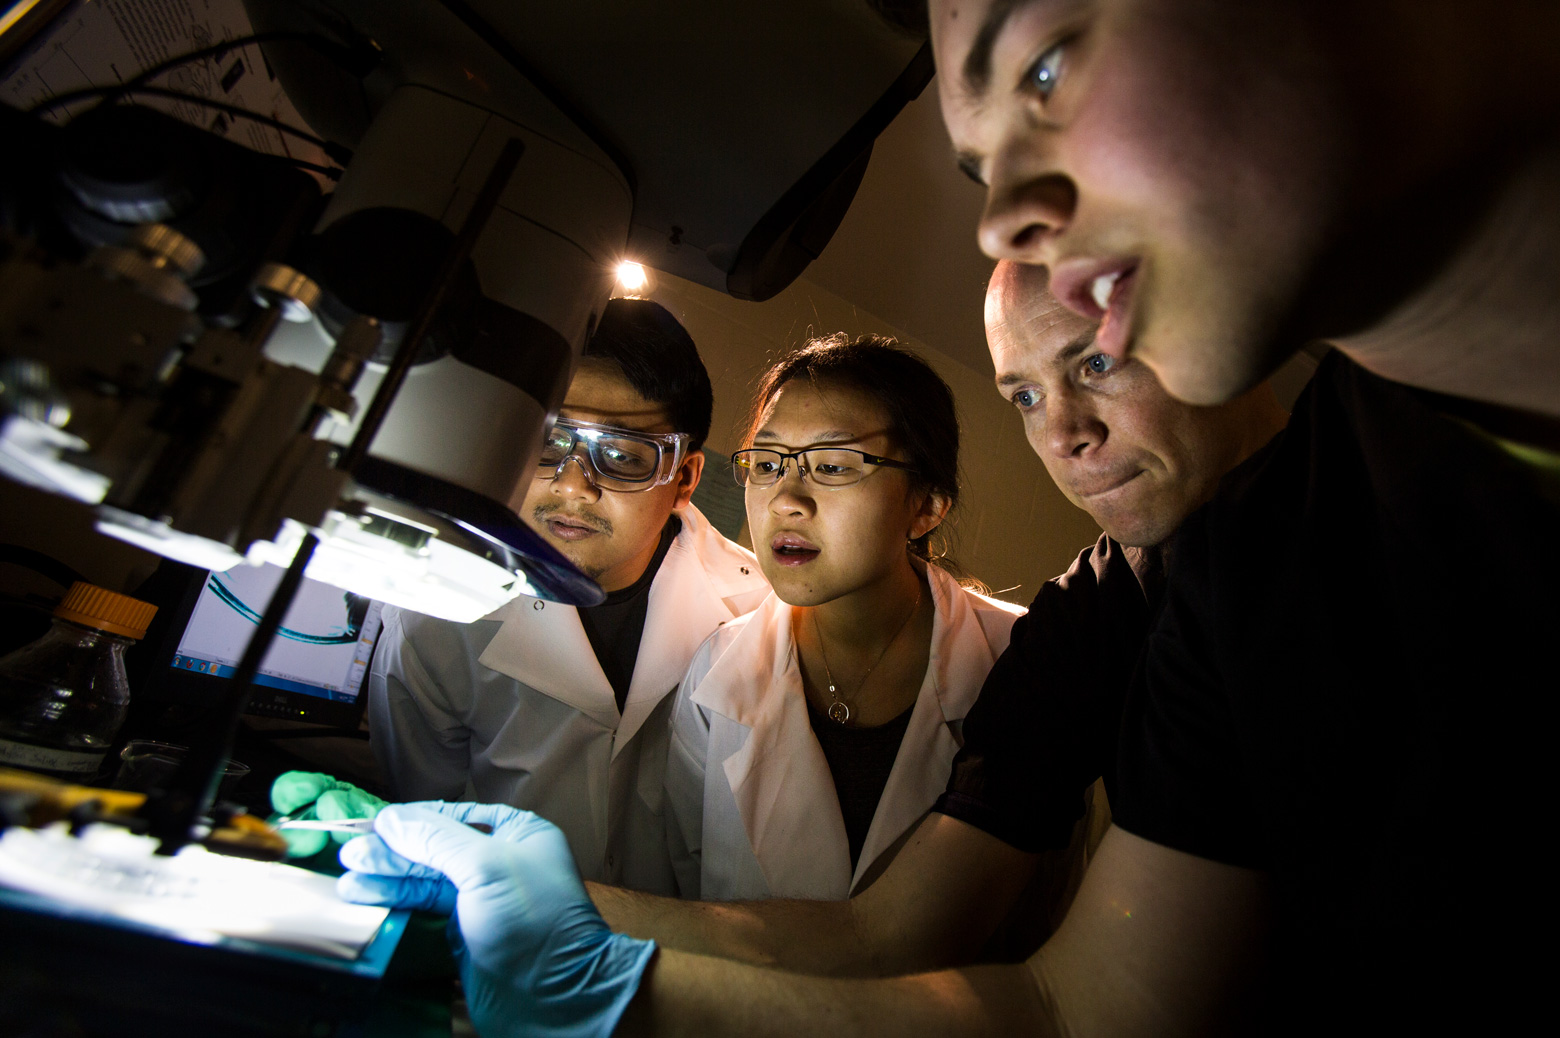 Tim Bruns, Assistant Professor of Biomedical Engineering at Michigan Engineering and his students observe the buccal mass of an aplysia Californica (sea slug) moving. Photo by Photo by Marcin Szczepanski